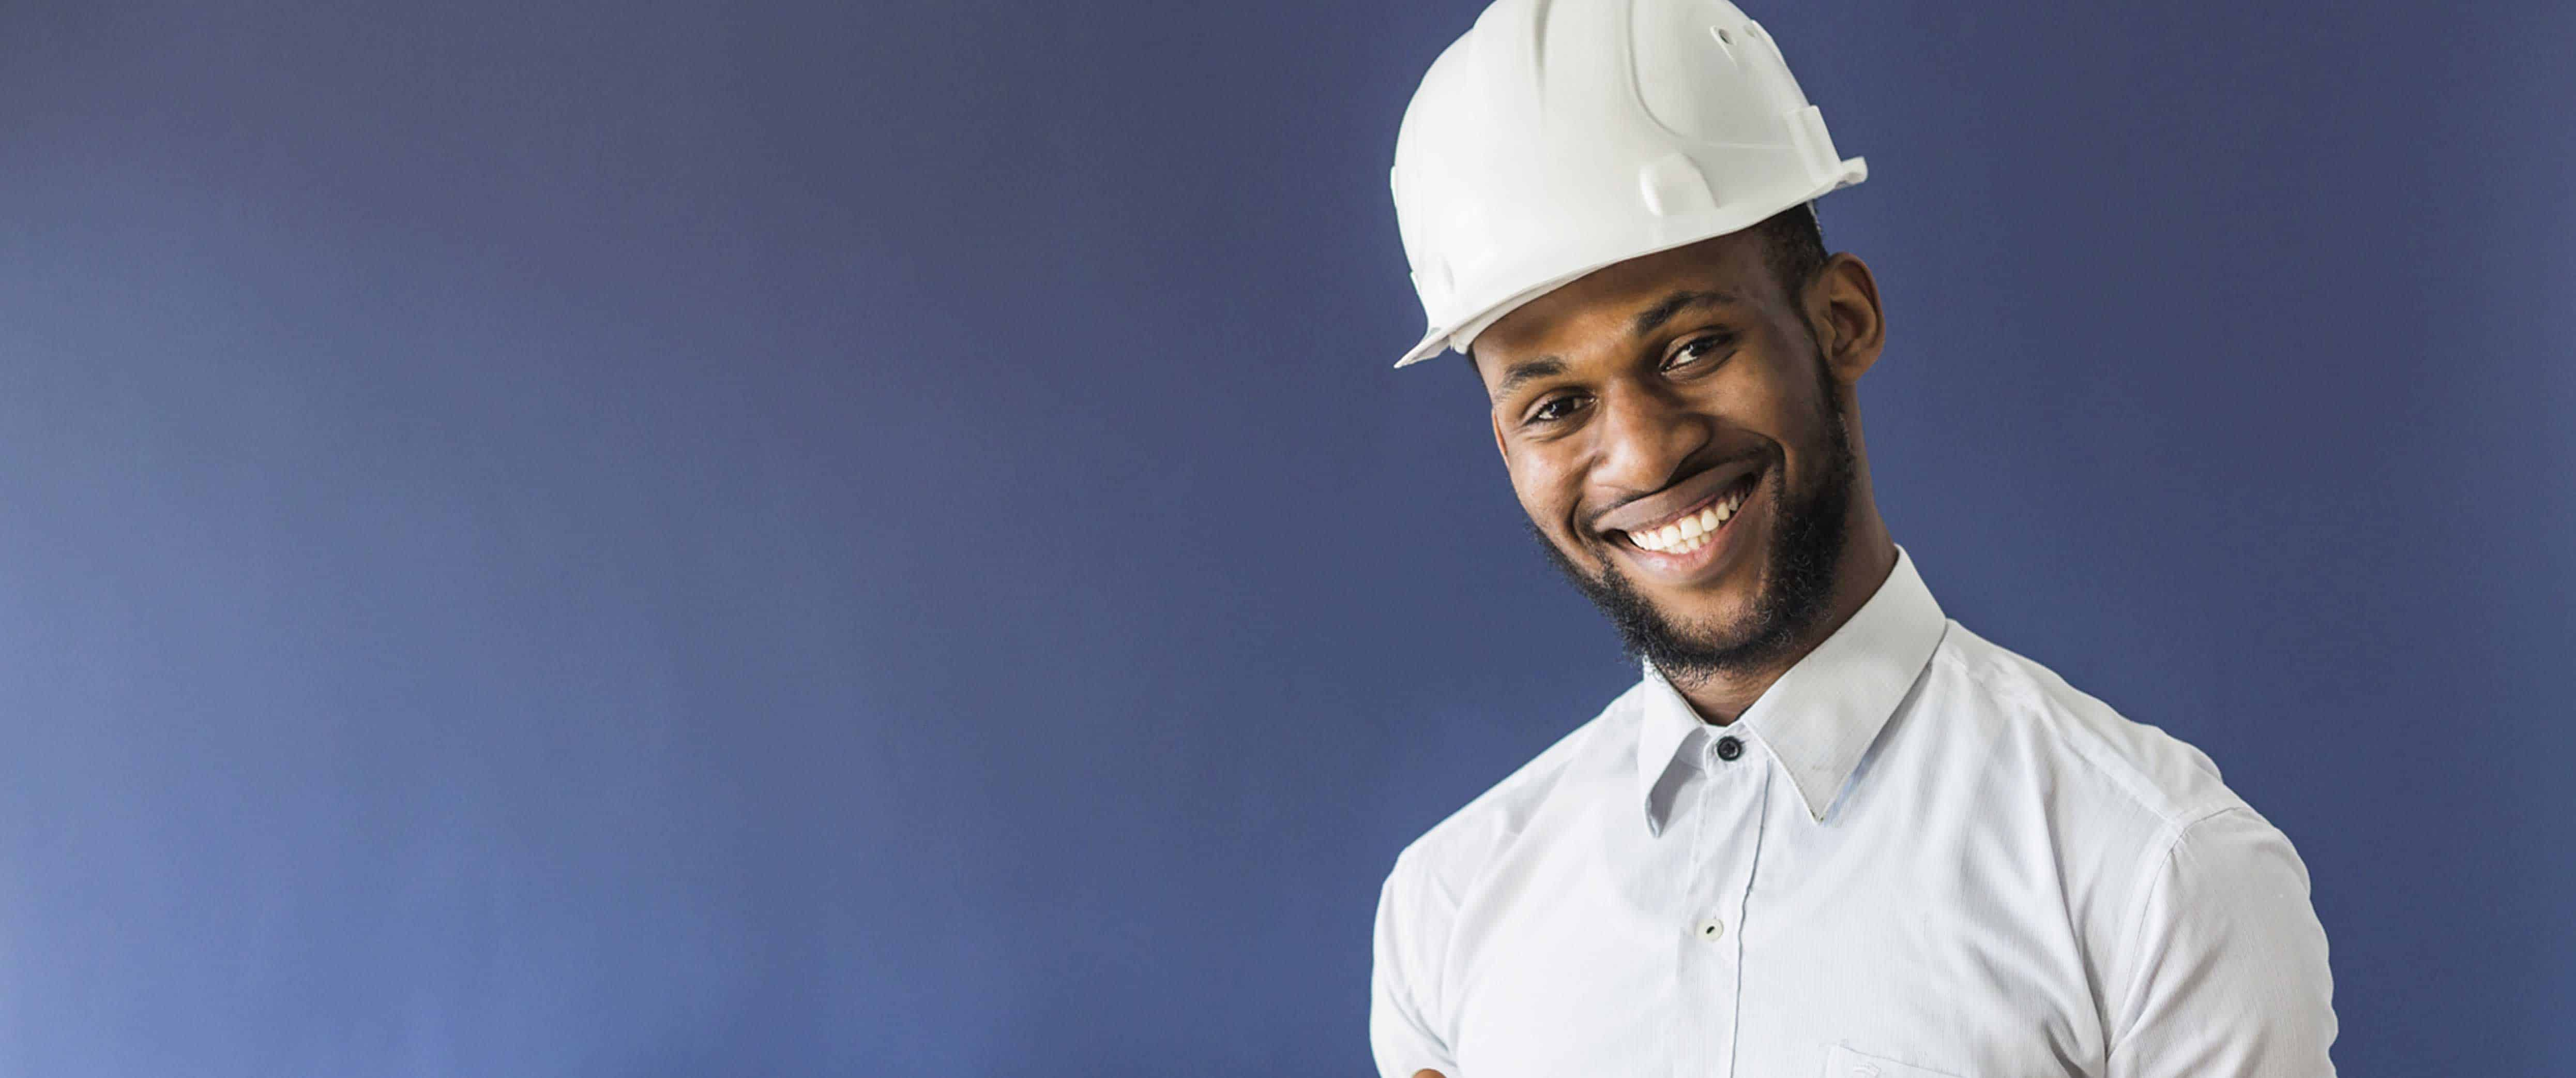 health and safety practices in the workplace